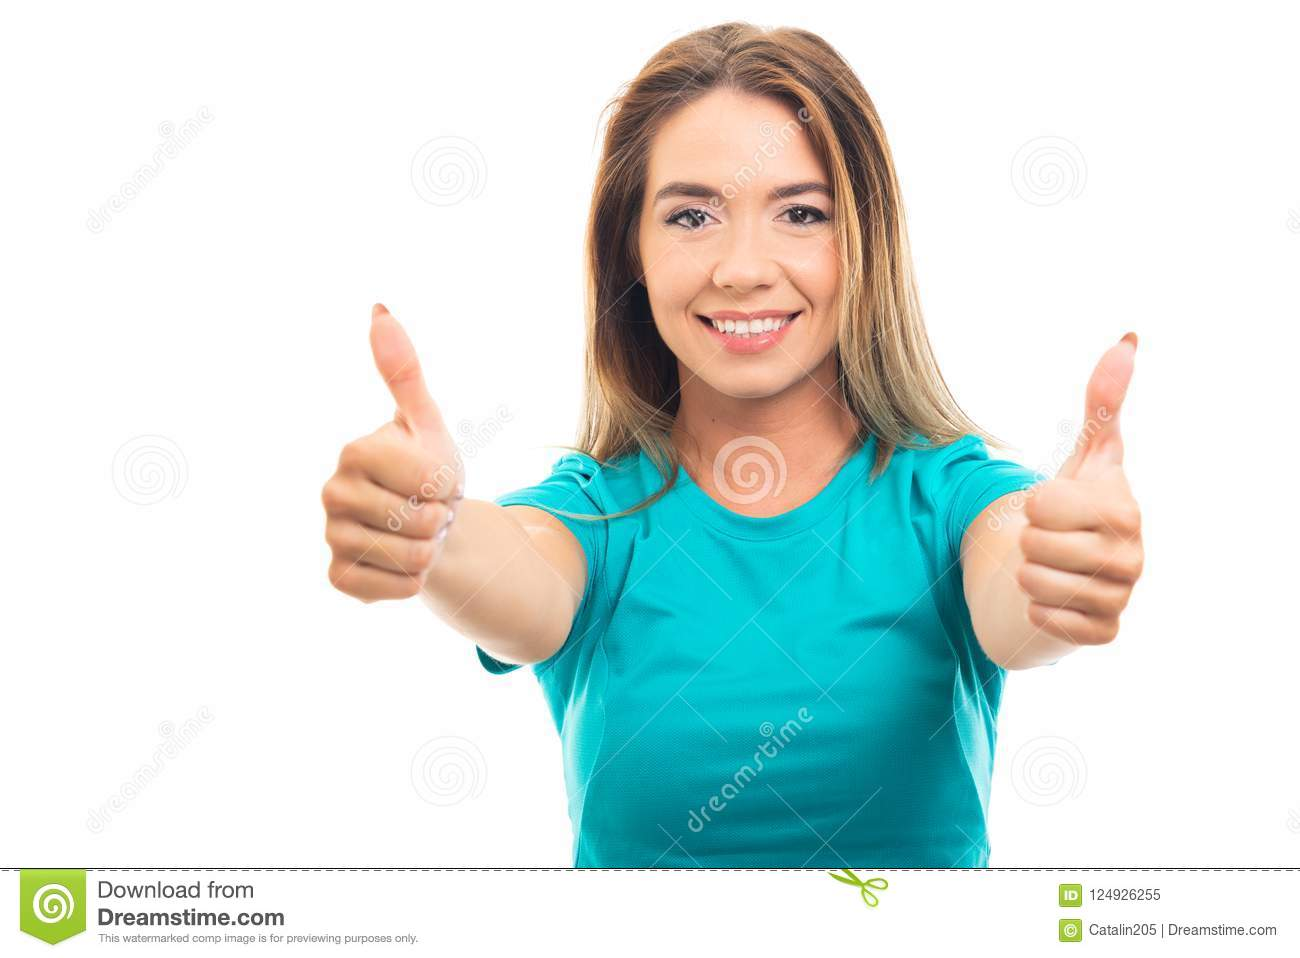 Young pretty girl wearing t-shirt showing both thumb up gesture